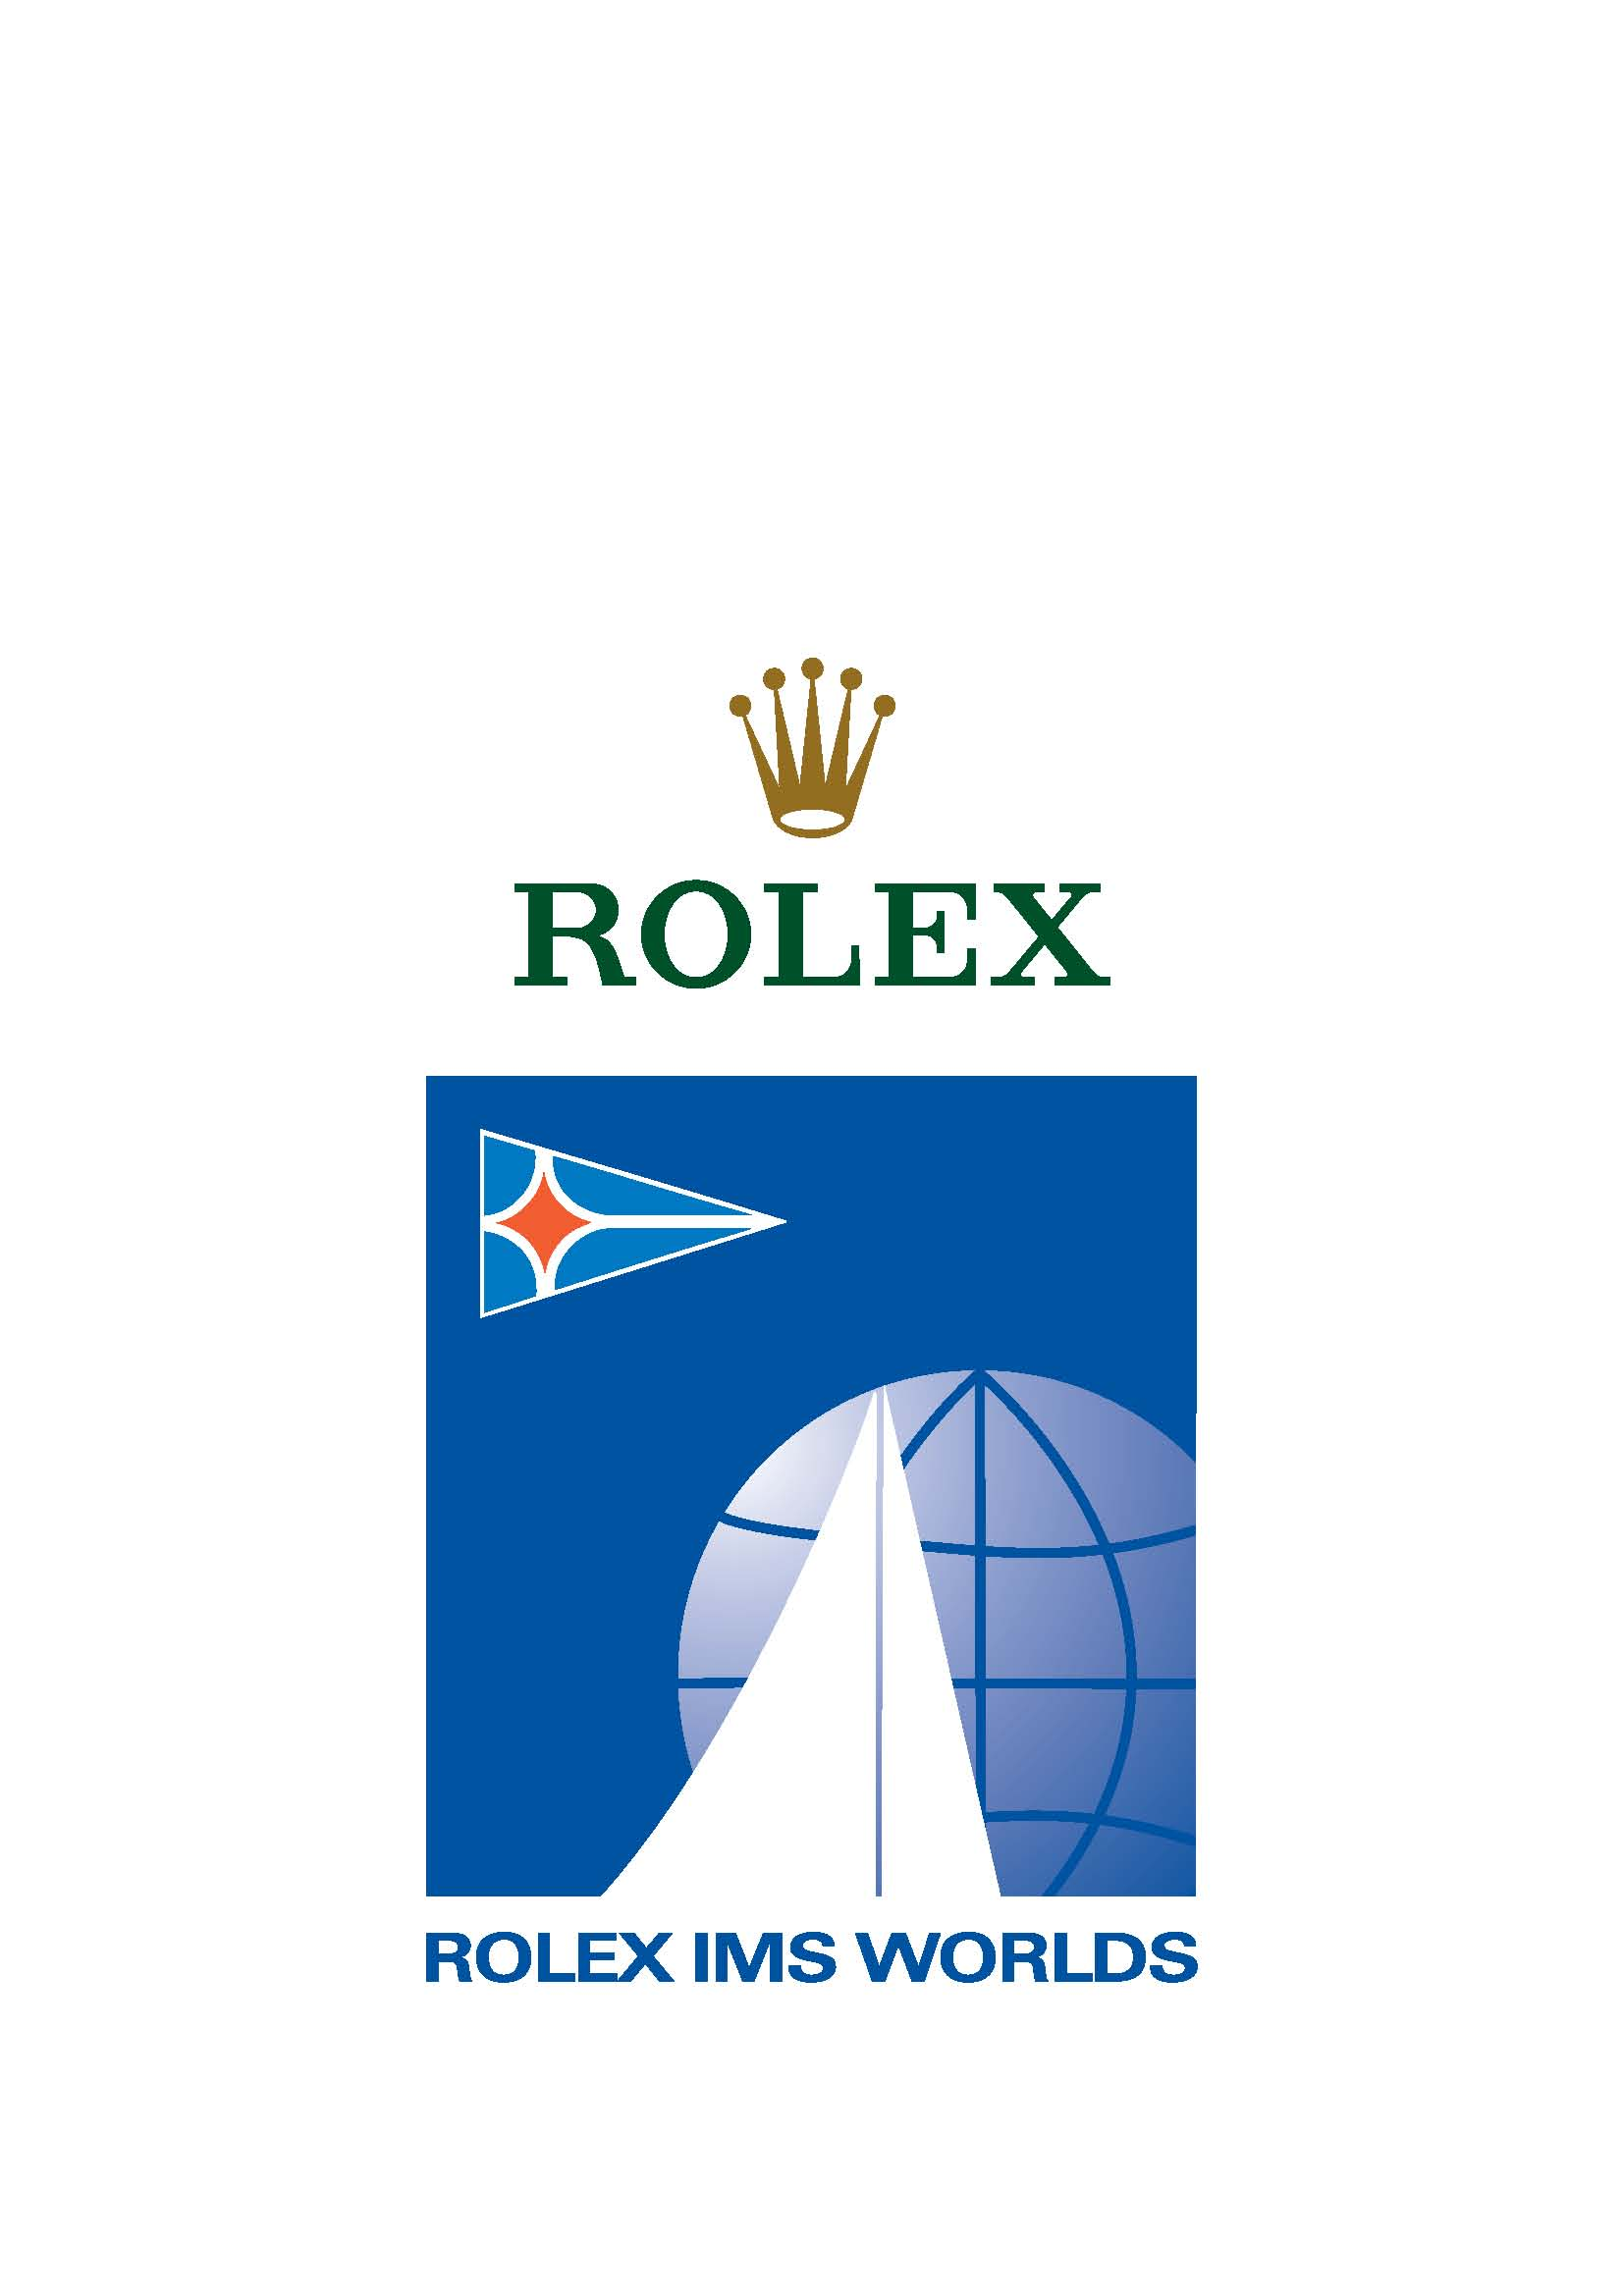 Yacht Club Costa Smeralda - Le Regate - Rolex Ims Offshore World Championship